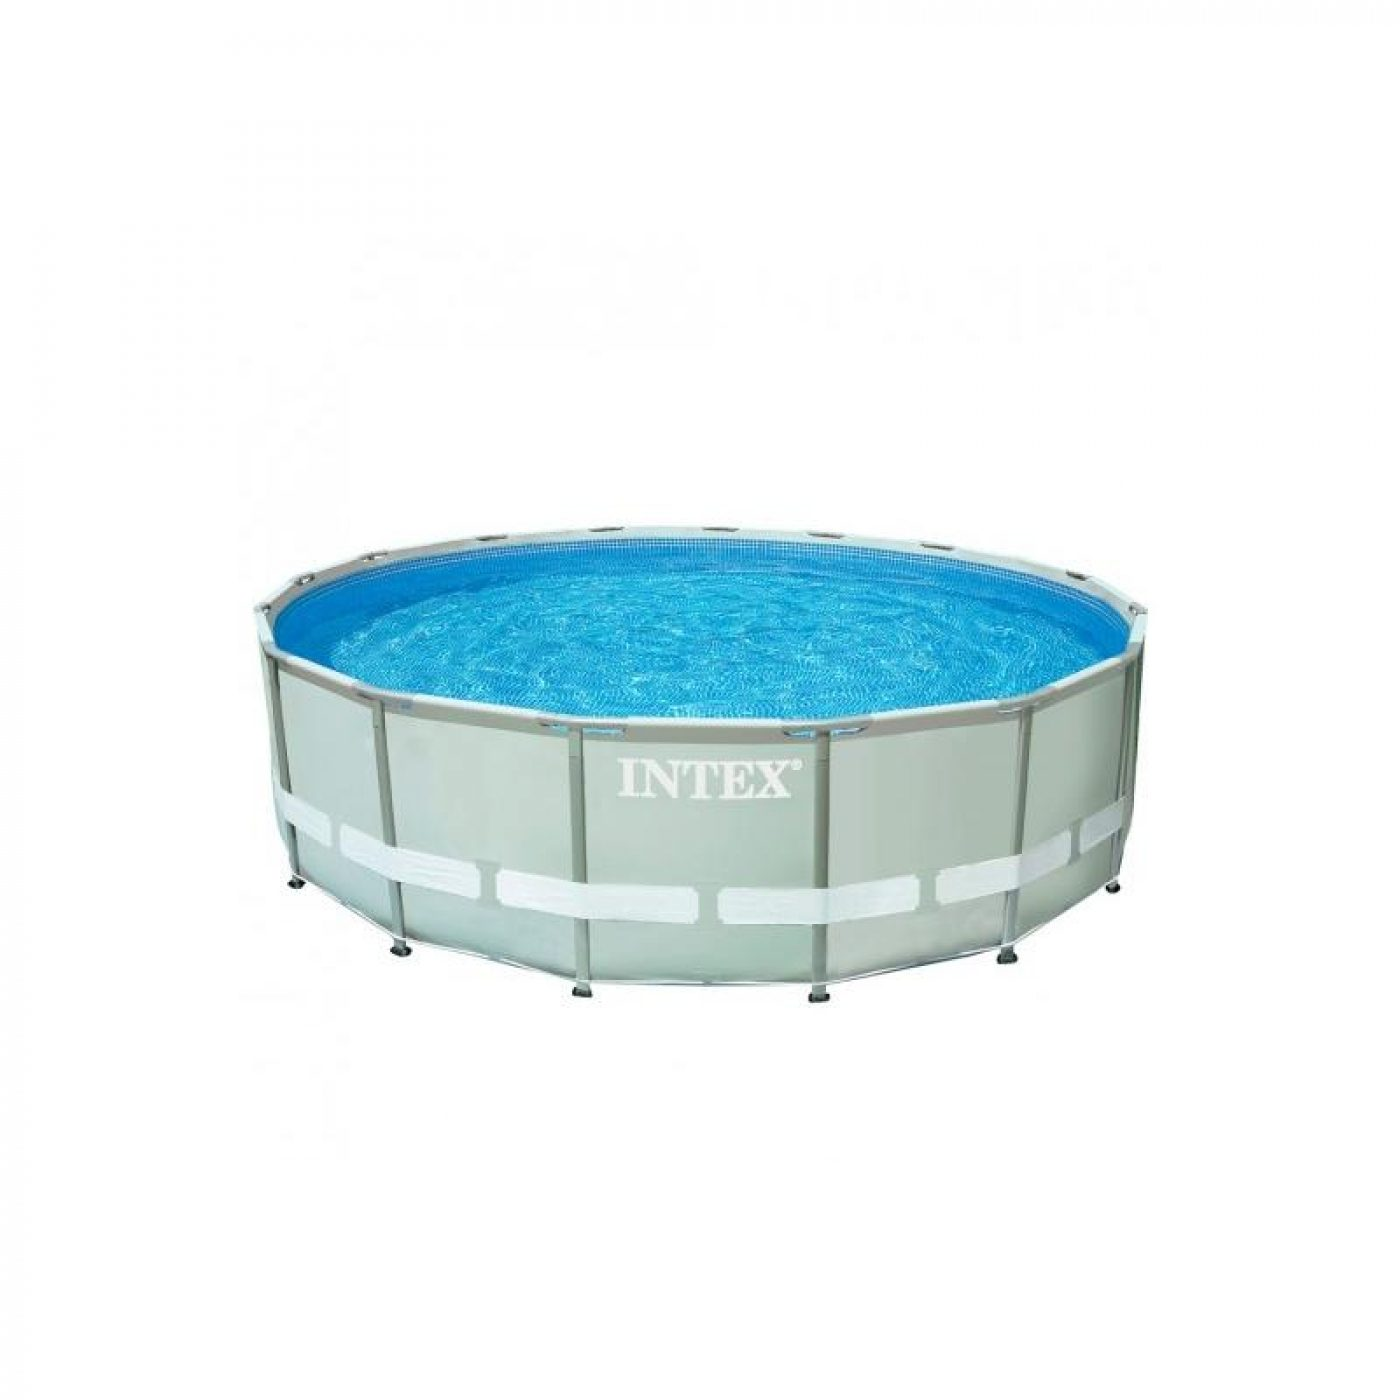 Intex Piscinas Acessorios Piscina Ultra 427 X 107 Cm Con Depuradora Intex Por 299 00